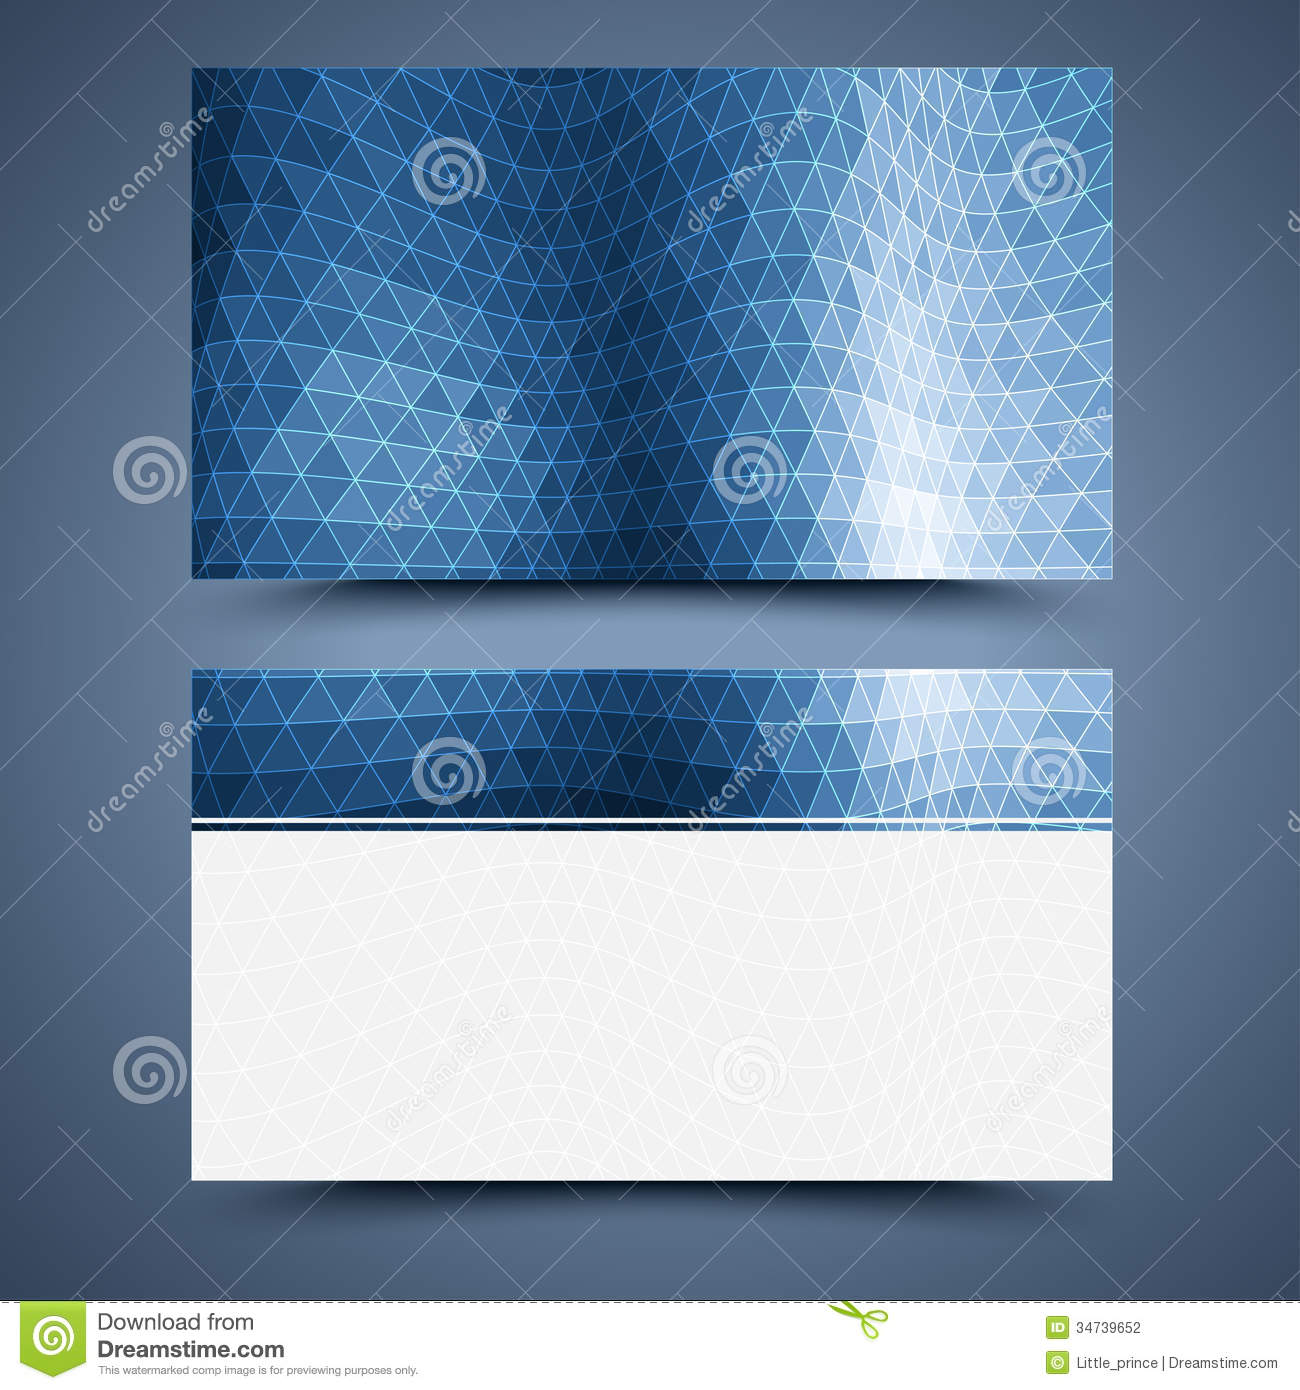 Blue business card template abstract background stock vector download blue business card template abstract background stock vector illustration of graphic backgrounds fbccfo Choice Image